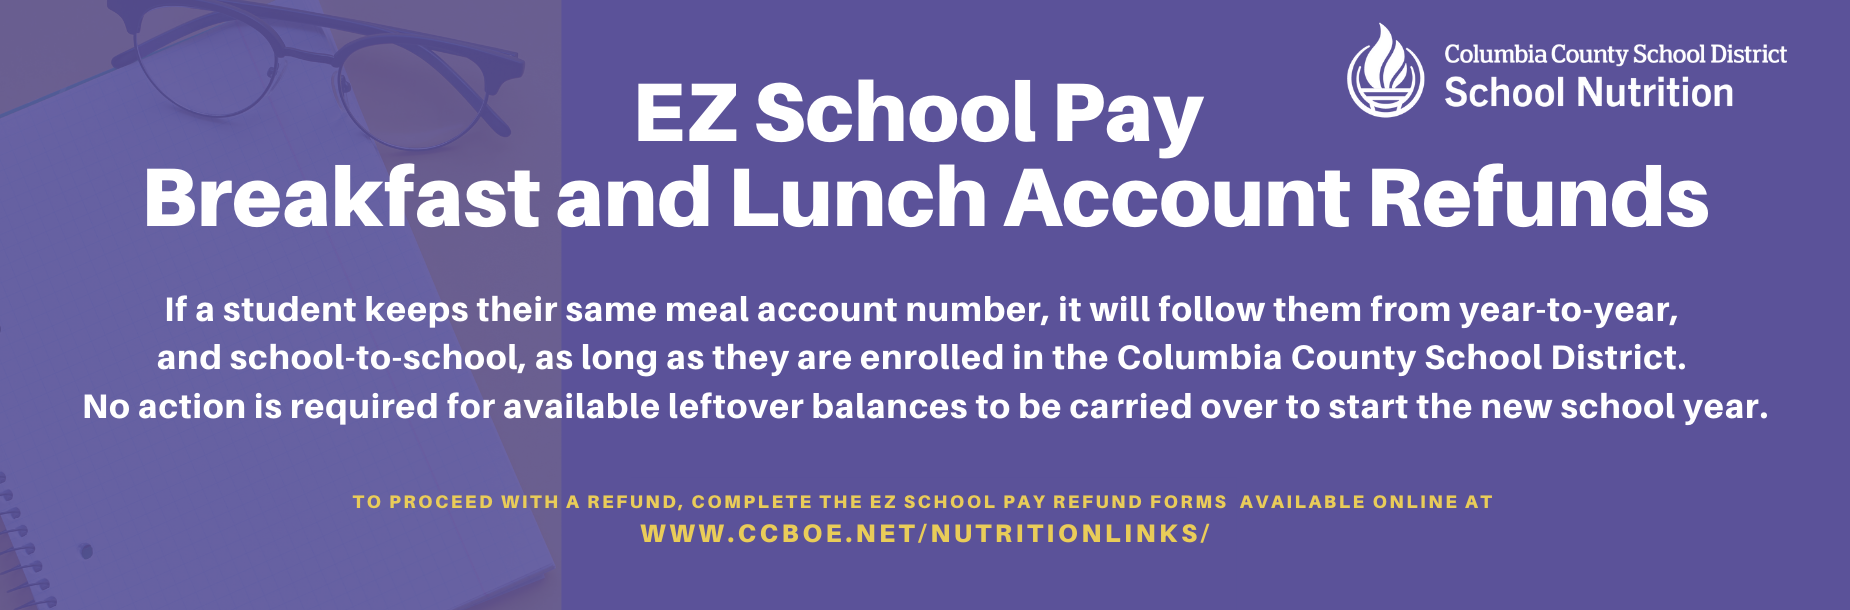 EZ School Pay Breakfast and Lunch Account Refunds